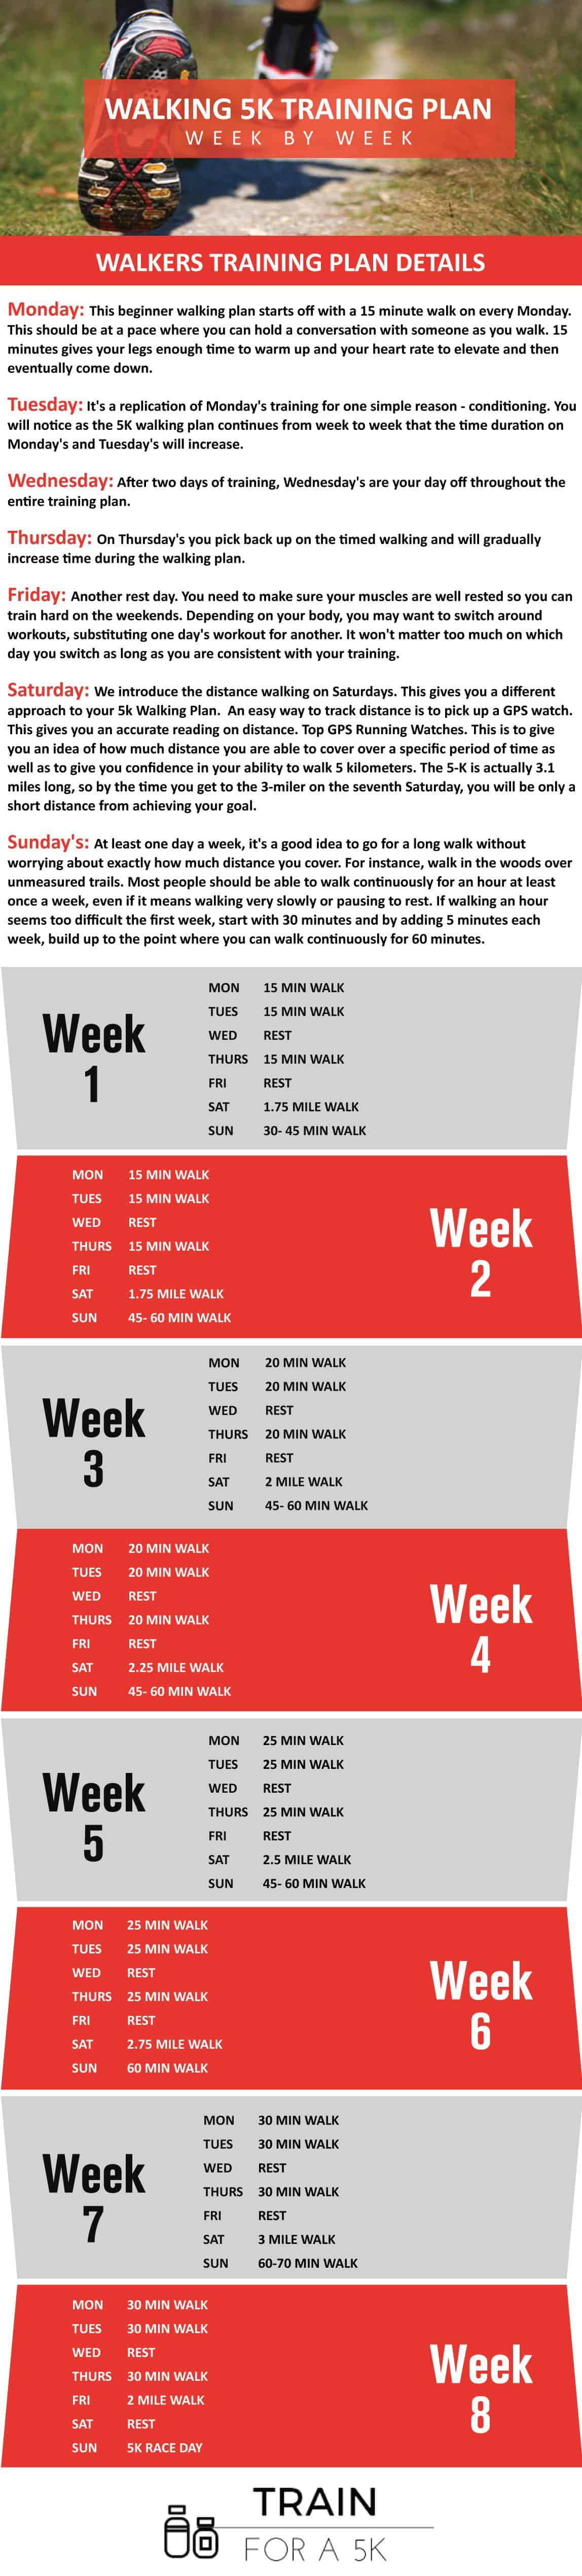 This 5K Walking Plan is designed for people who are just getting started in physical fitness, pushing a stroller during the 5K run/walk event or a little older and want to get into 5K participations. This plan will prepare you to be physically ready to be walking a 5K in eight weeks.